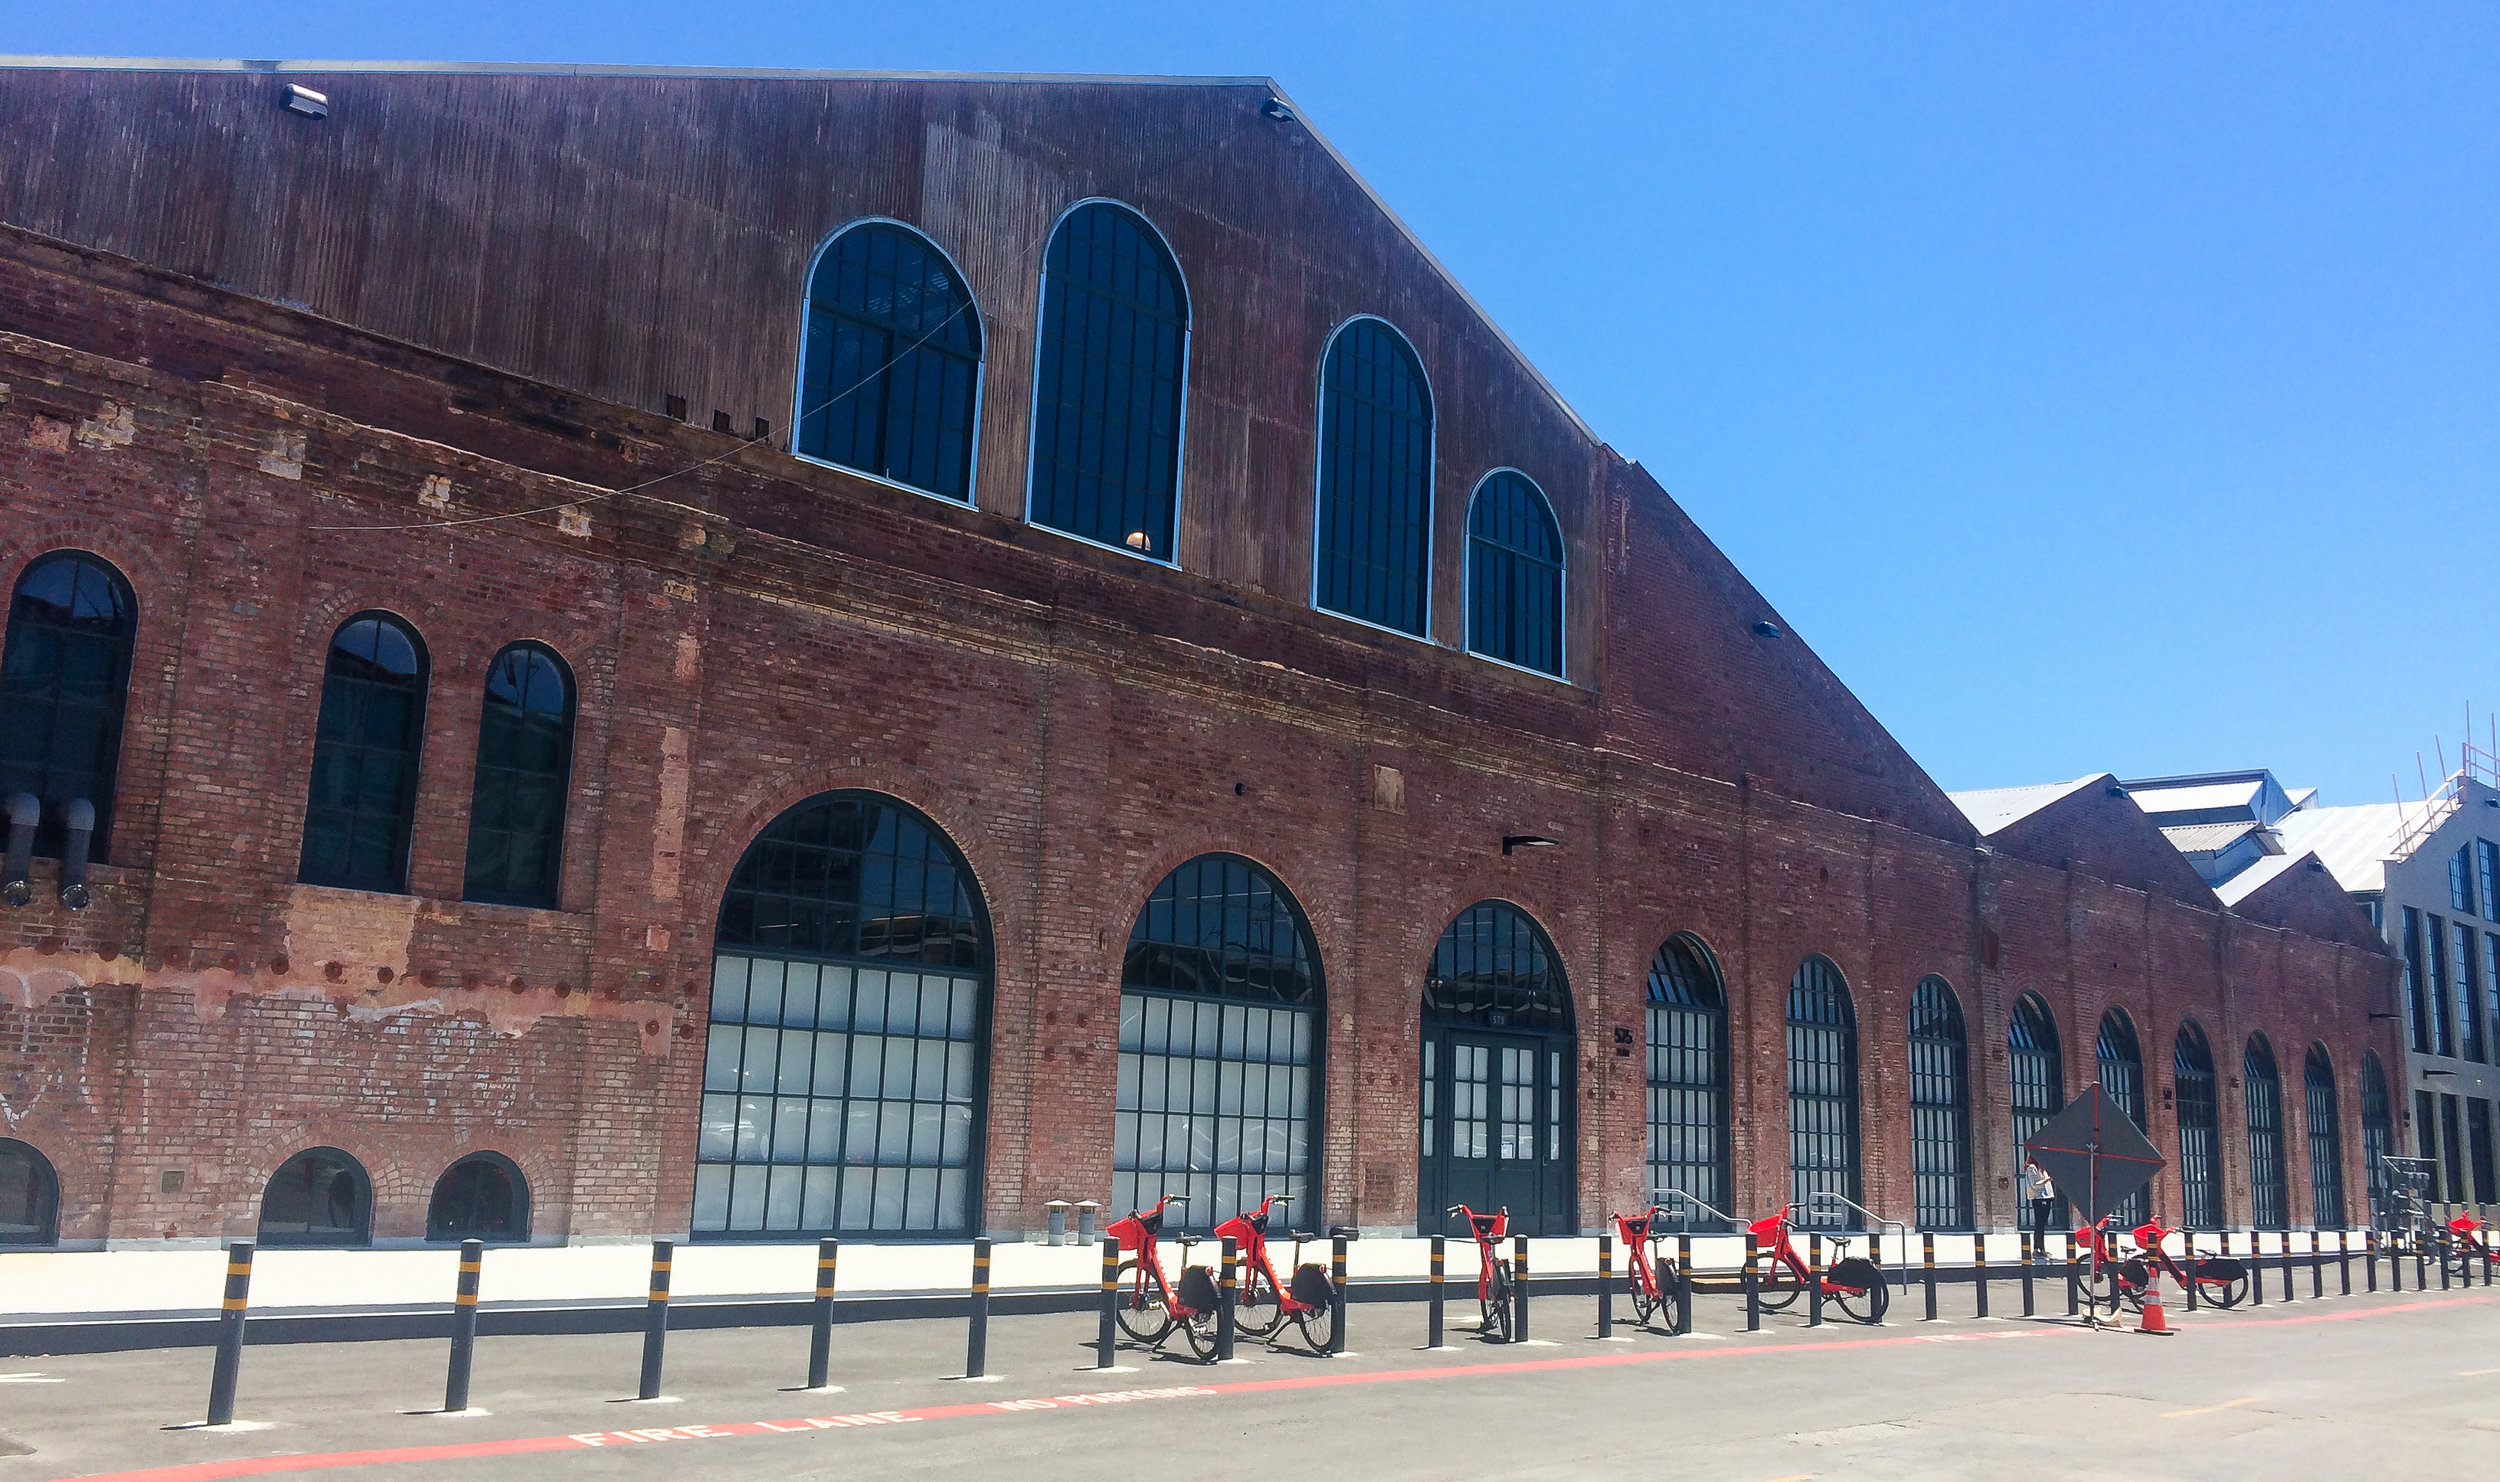 A historic building with new bikes for rent.